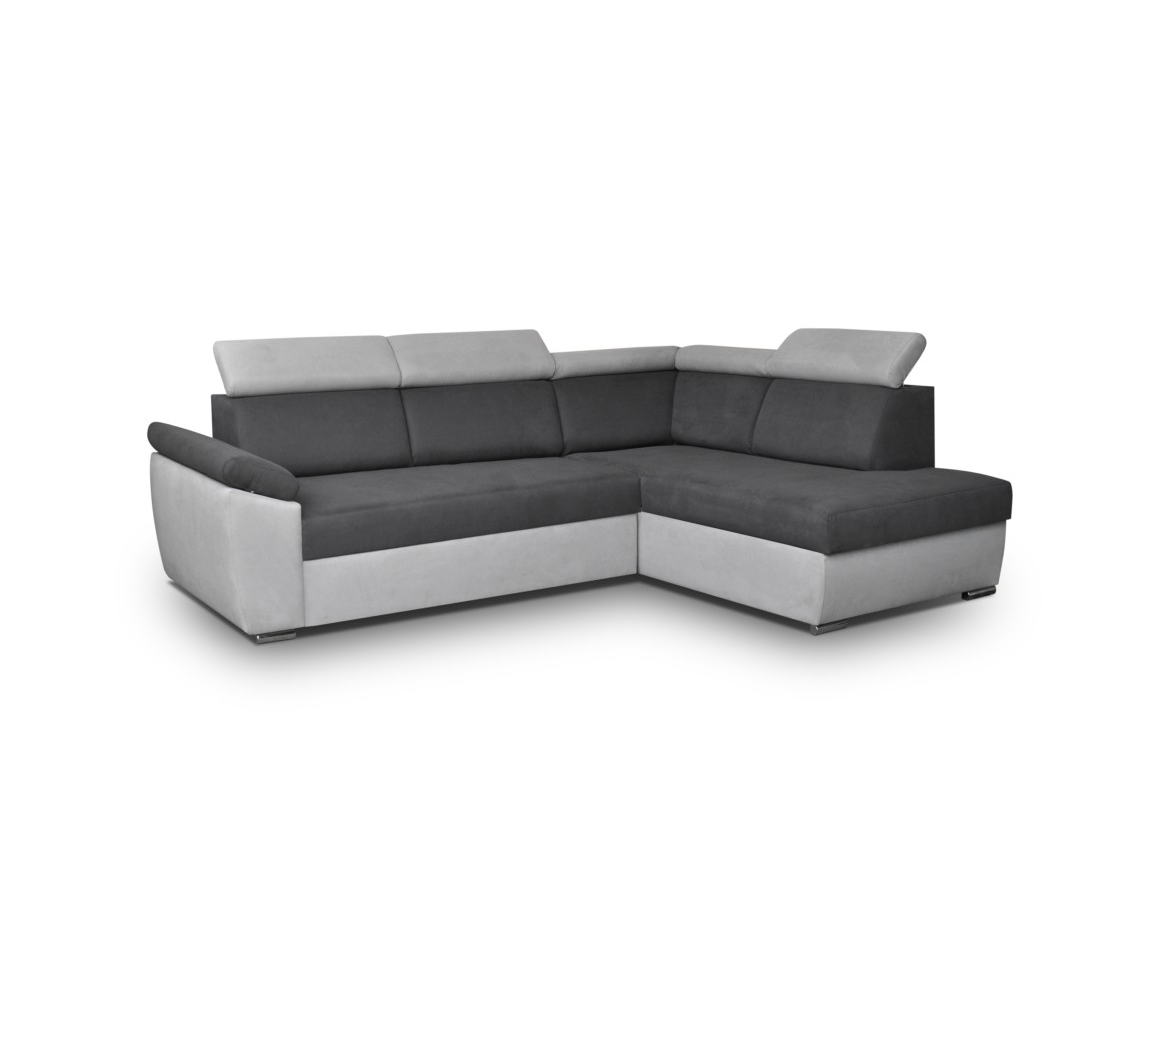 ecksofa modena grau m bel muller braun. Black Bedroom Furniture Sets. Home Design Ideas